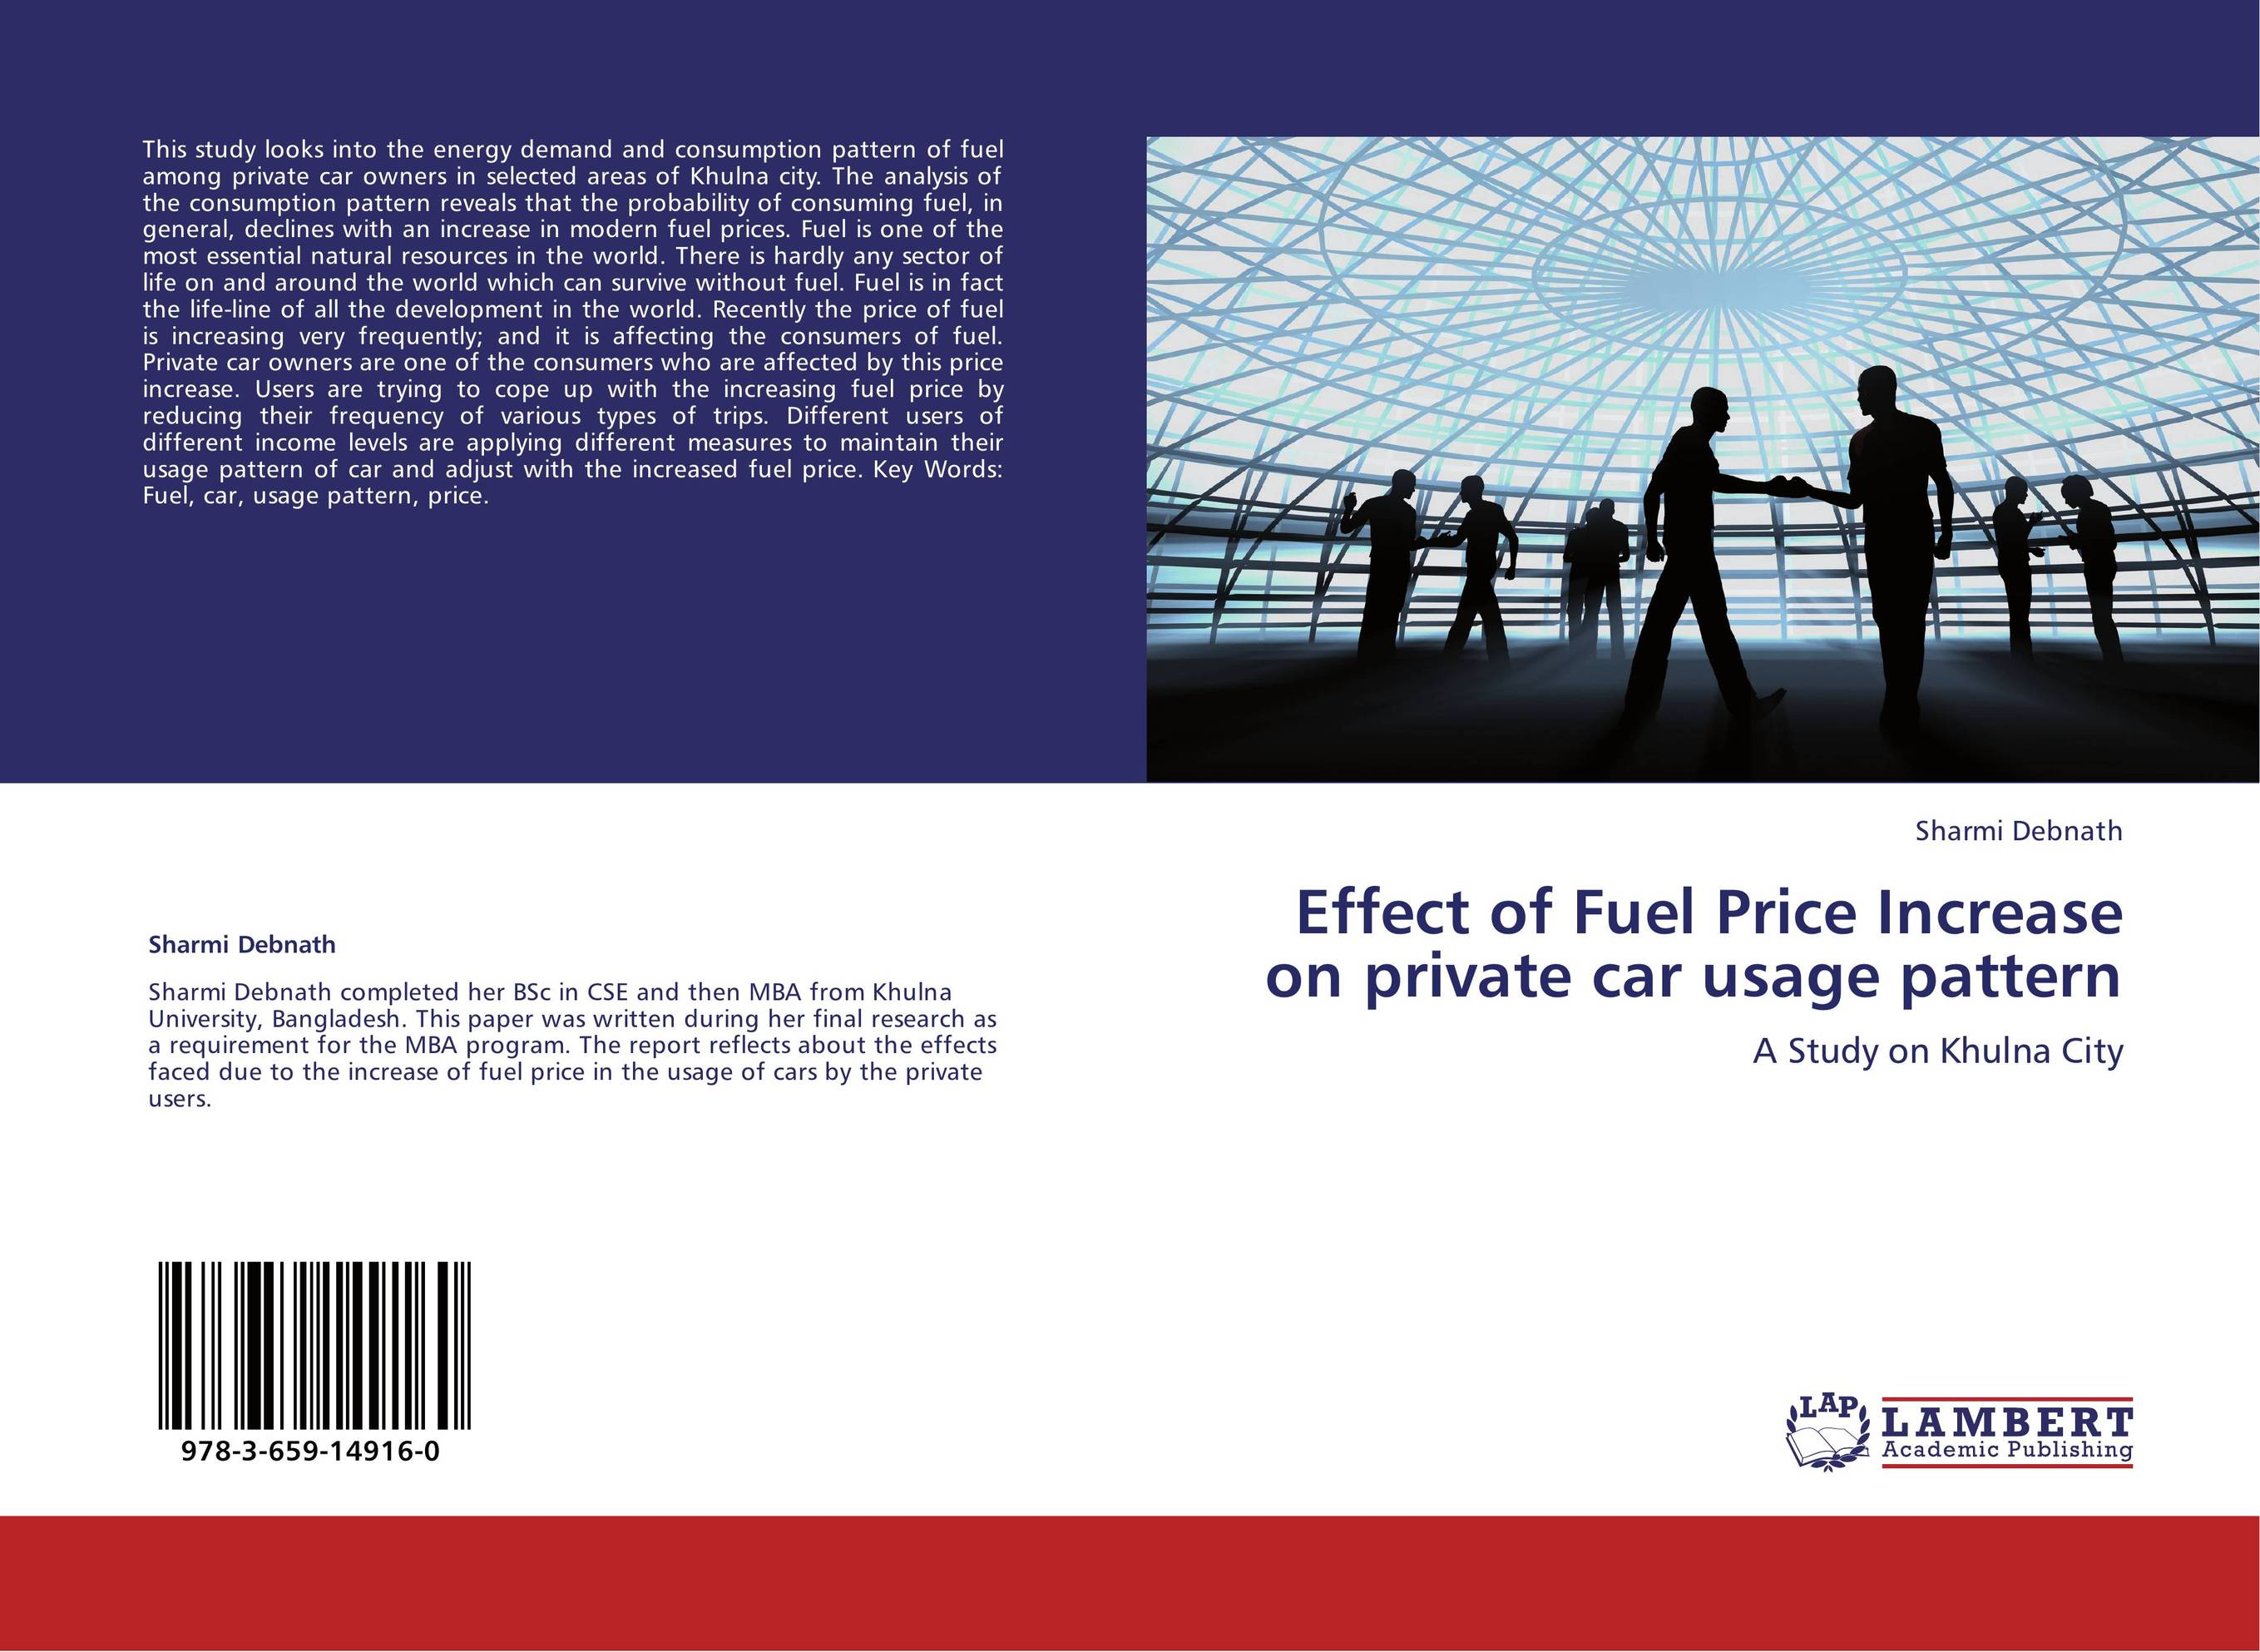 Effect of Fuel Price Increase on private car usage pattern